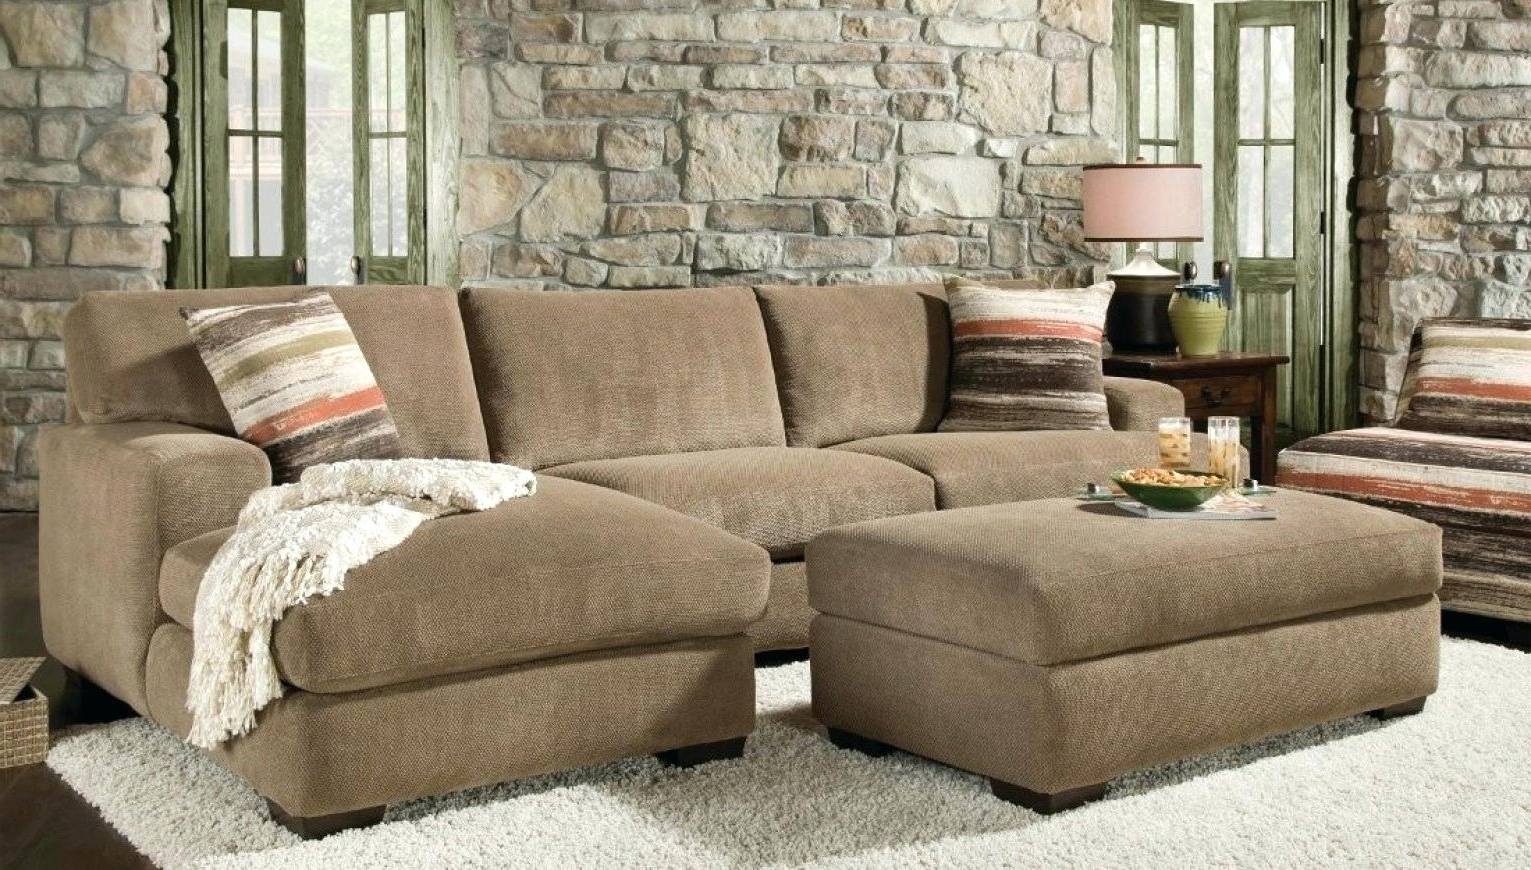 Best And Newest Oversized Sectional Sofa Sa Sas Bed Huge Sofas Sleeper With Huge Sofas (View 6 of 20)